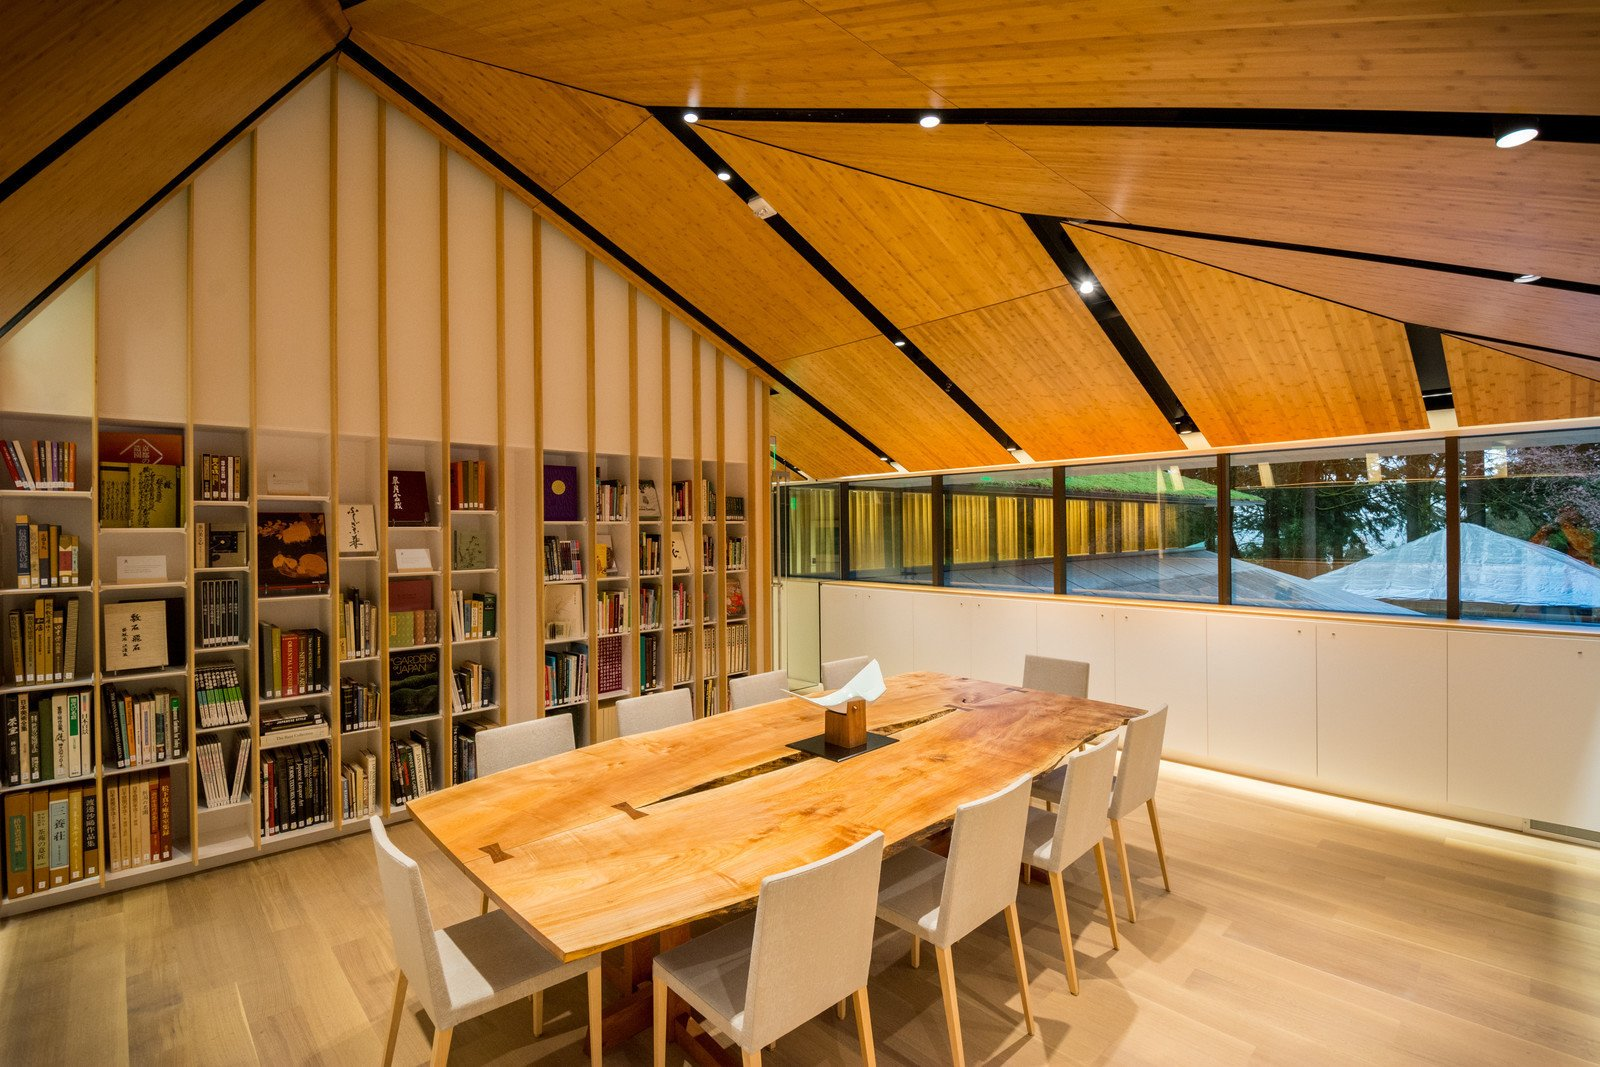 The collection of Japanese garden and cultural books is housed in the Vollum library. A custom-made George Nakashima table sits in the foreground.  Photo 3 of 8 in Take a Tour of Kengo Kuma's Expansion of the Portland Japanese Garden